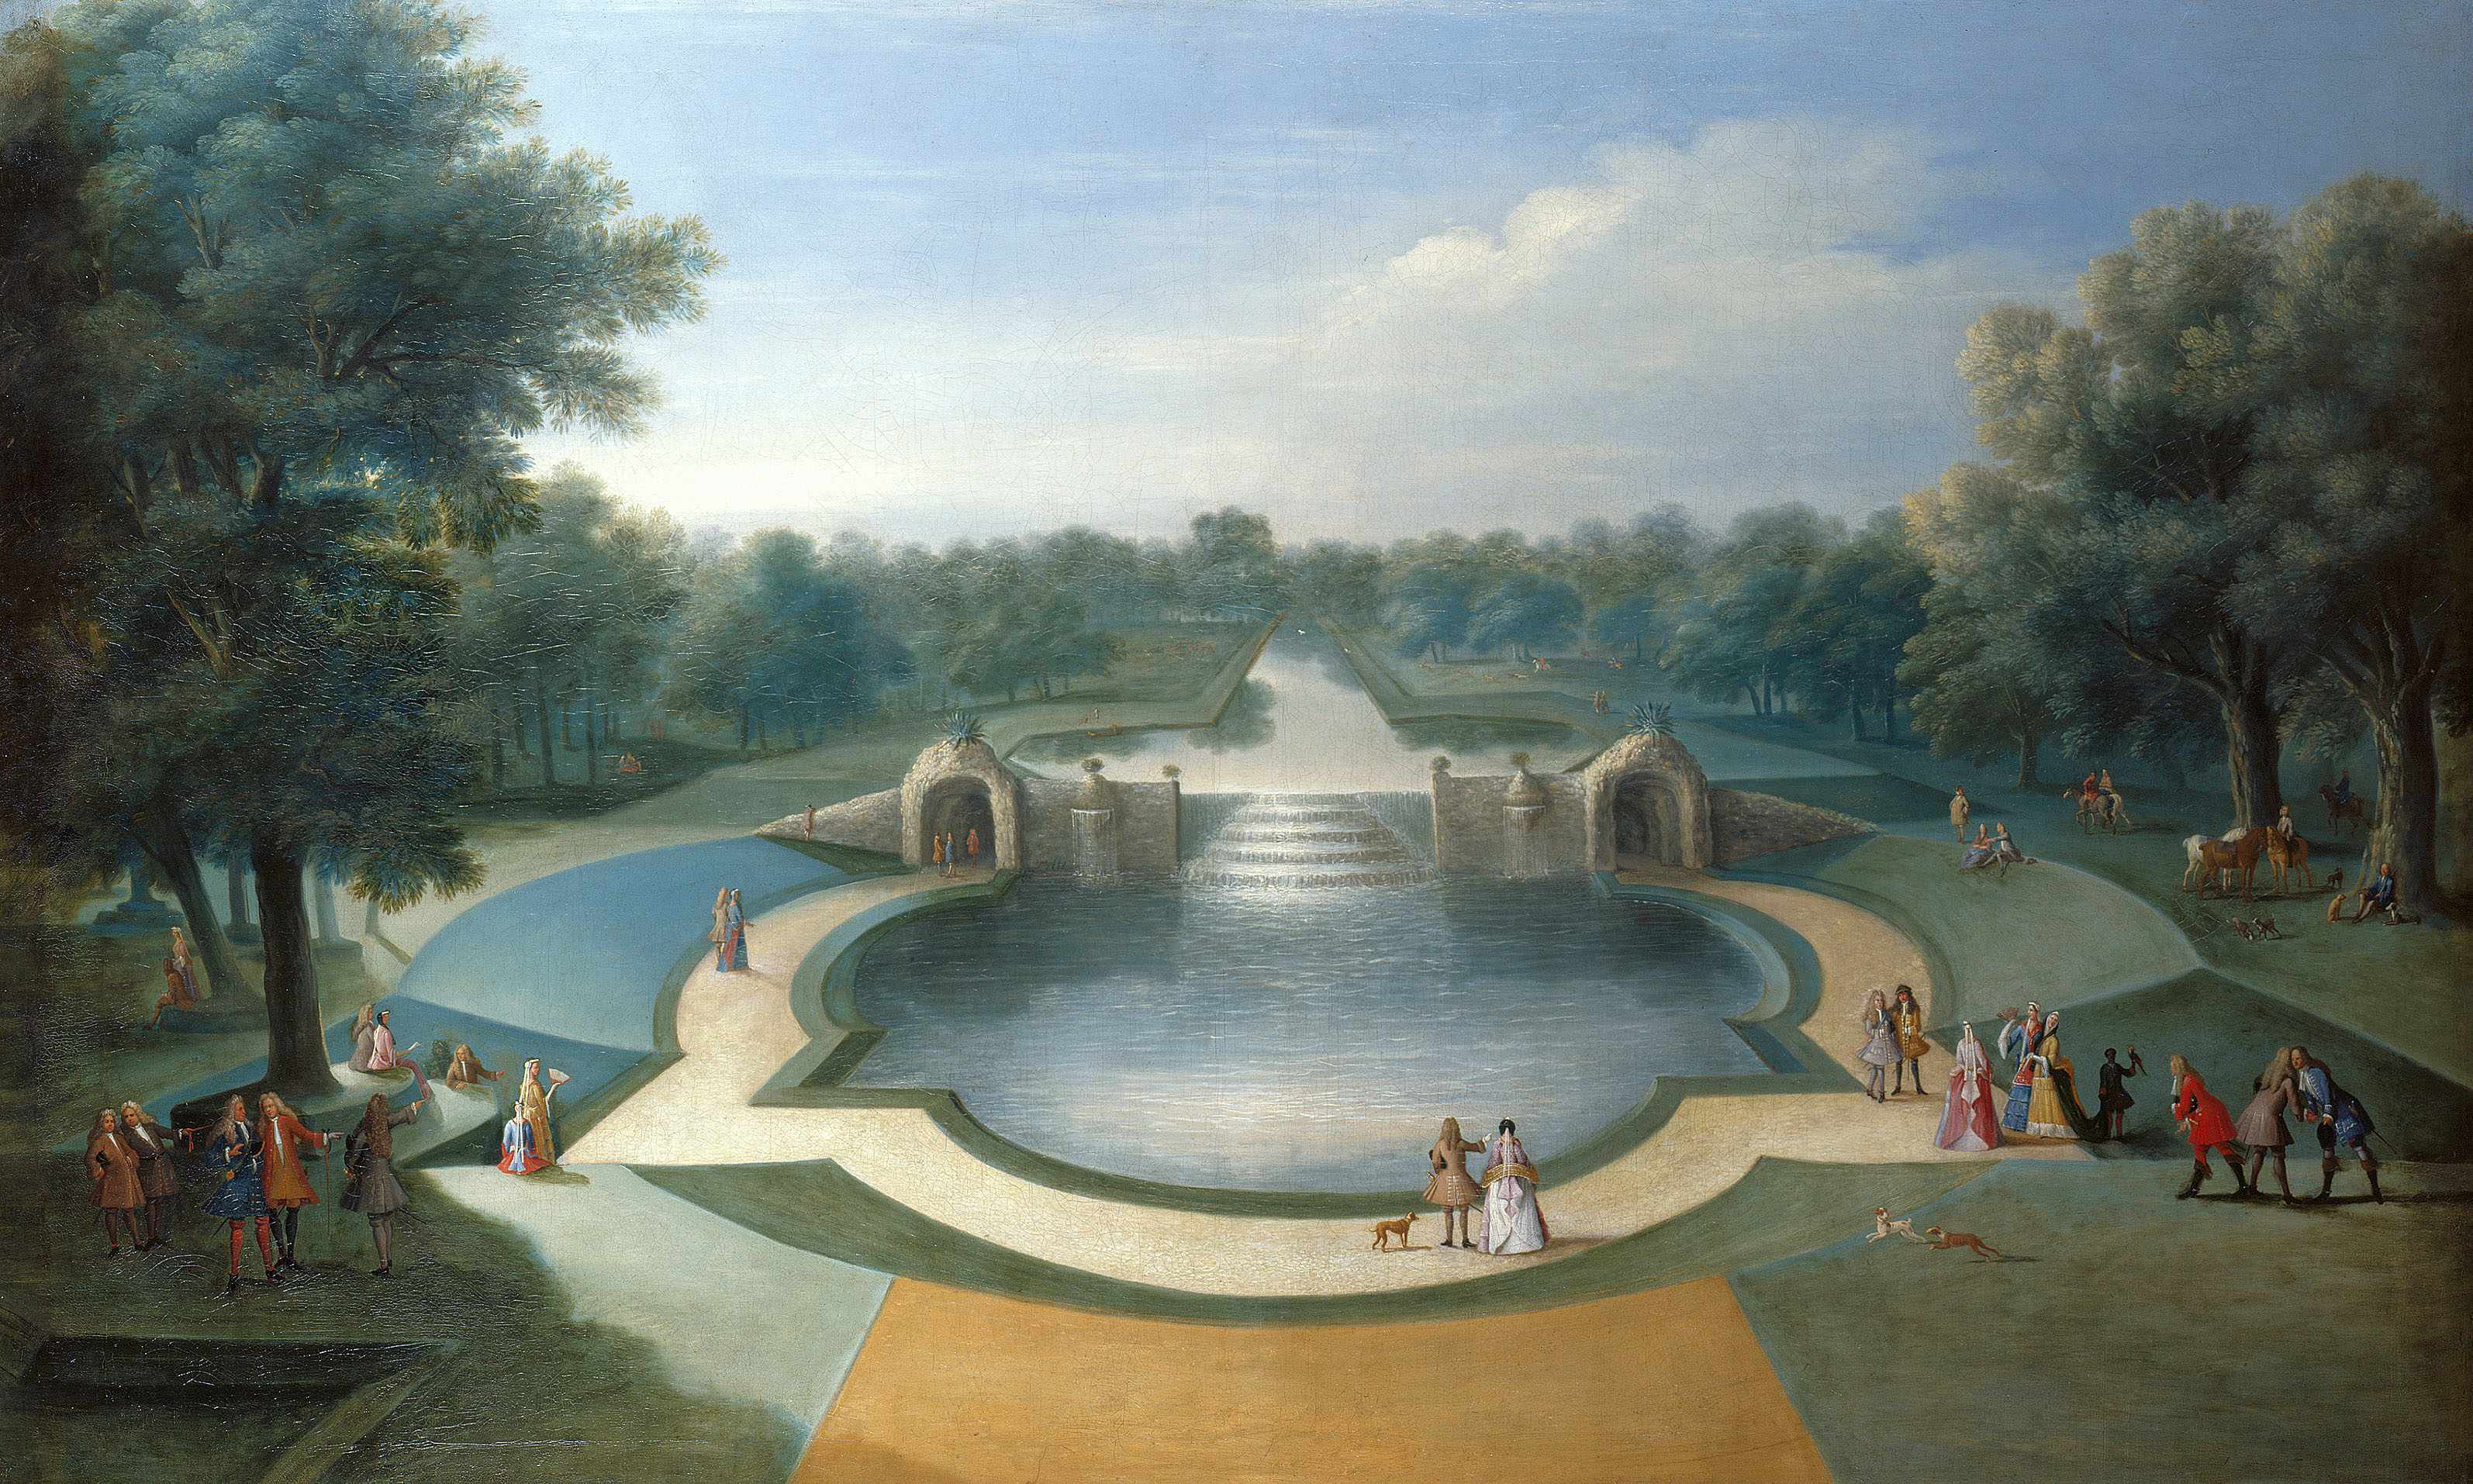 Marco Ricci, A View of the Cascade, Bushy Park Water Gardens, c.1715.  Royal Collection Trust / copyright Her Majesty Queen Elizabeth II 2014   Single use only in relation to the exhibition 'Painting Paradise: The Art of the Garden' at The Queen's Gallery, Buckingham Palace. Photographs must not be archived or sold on.